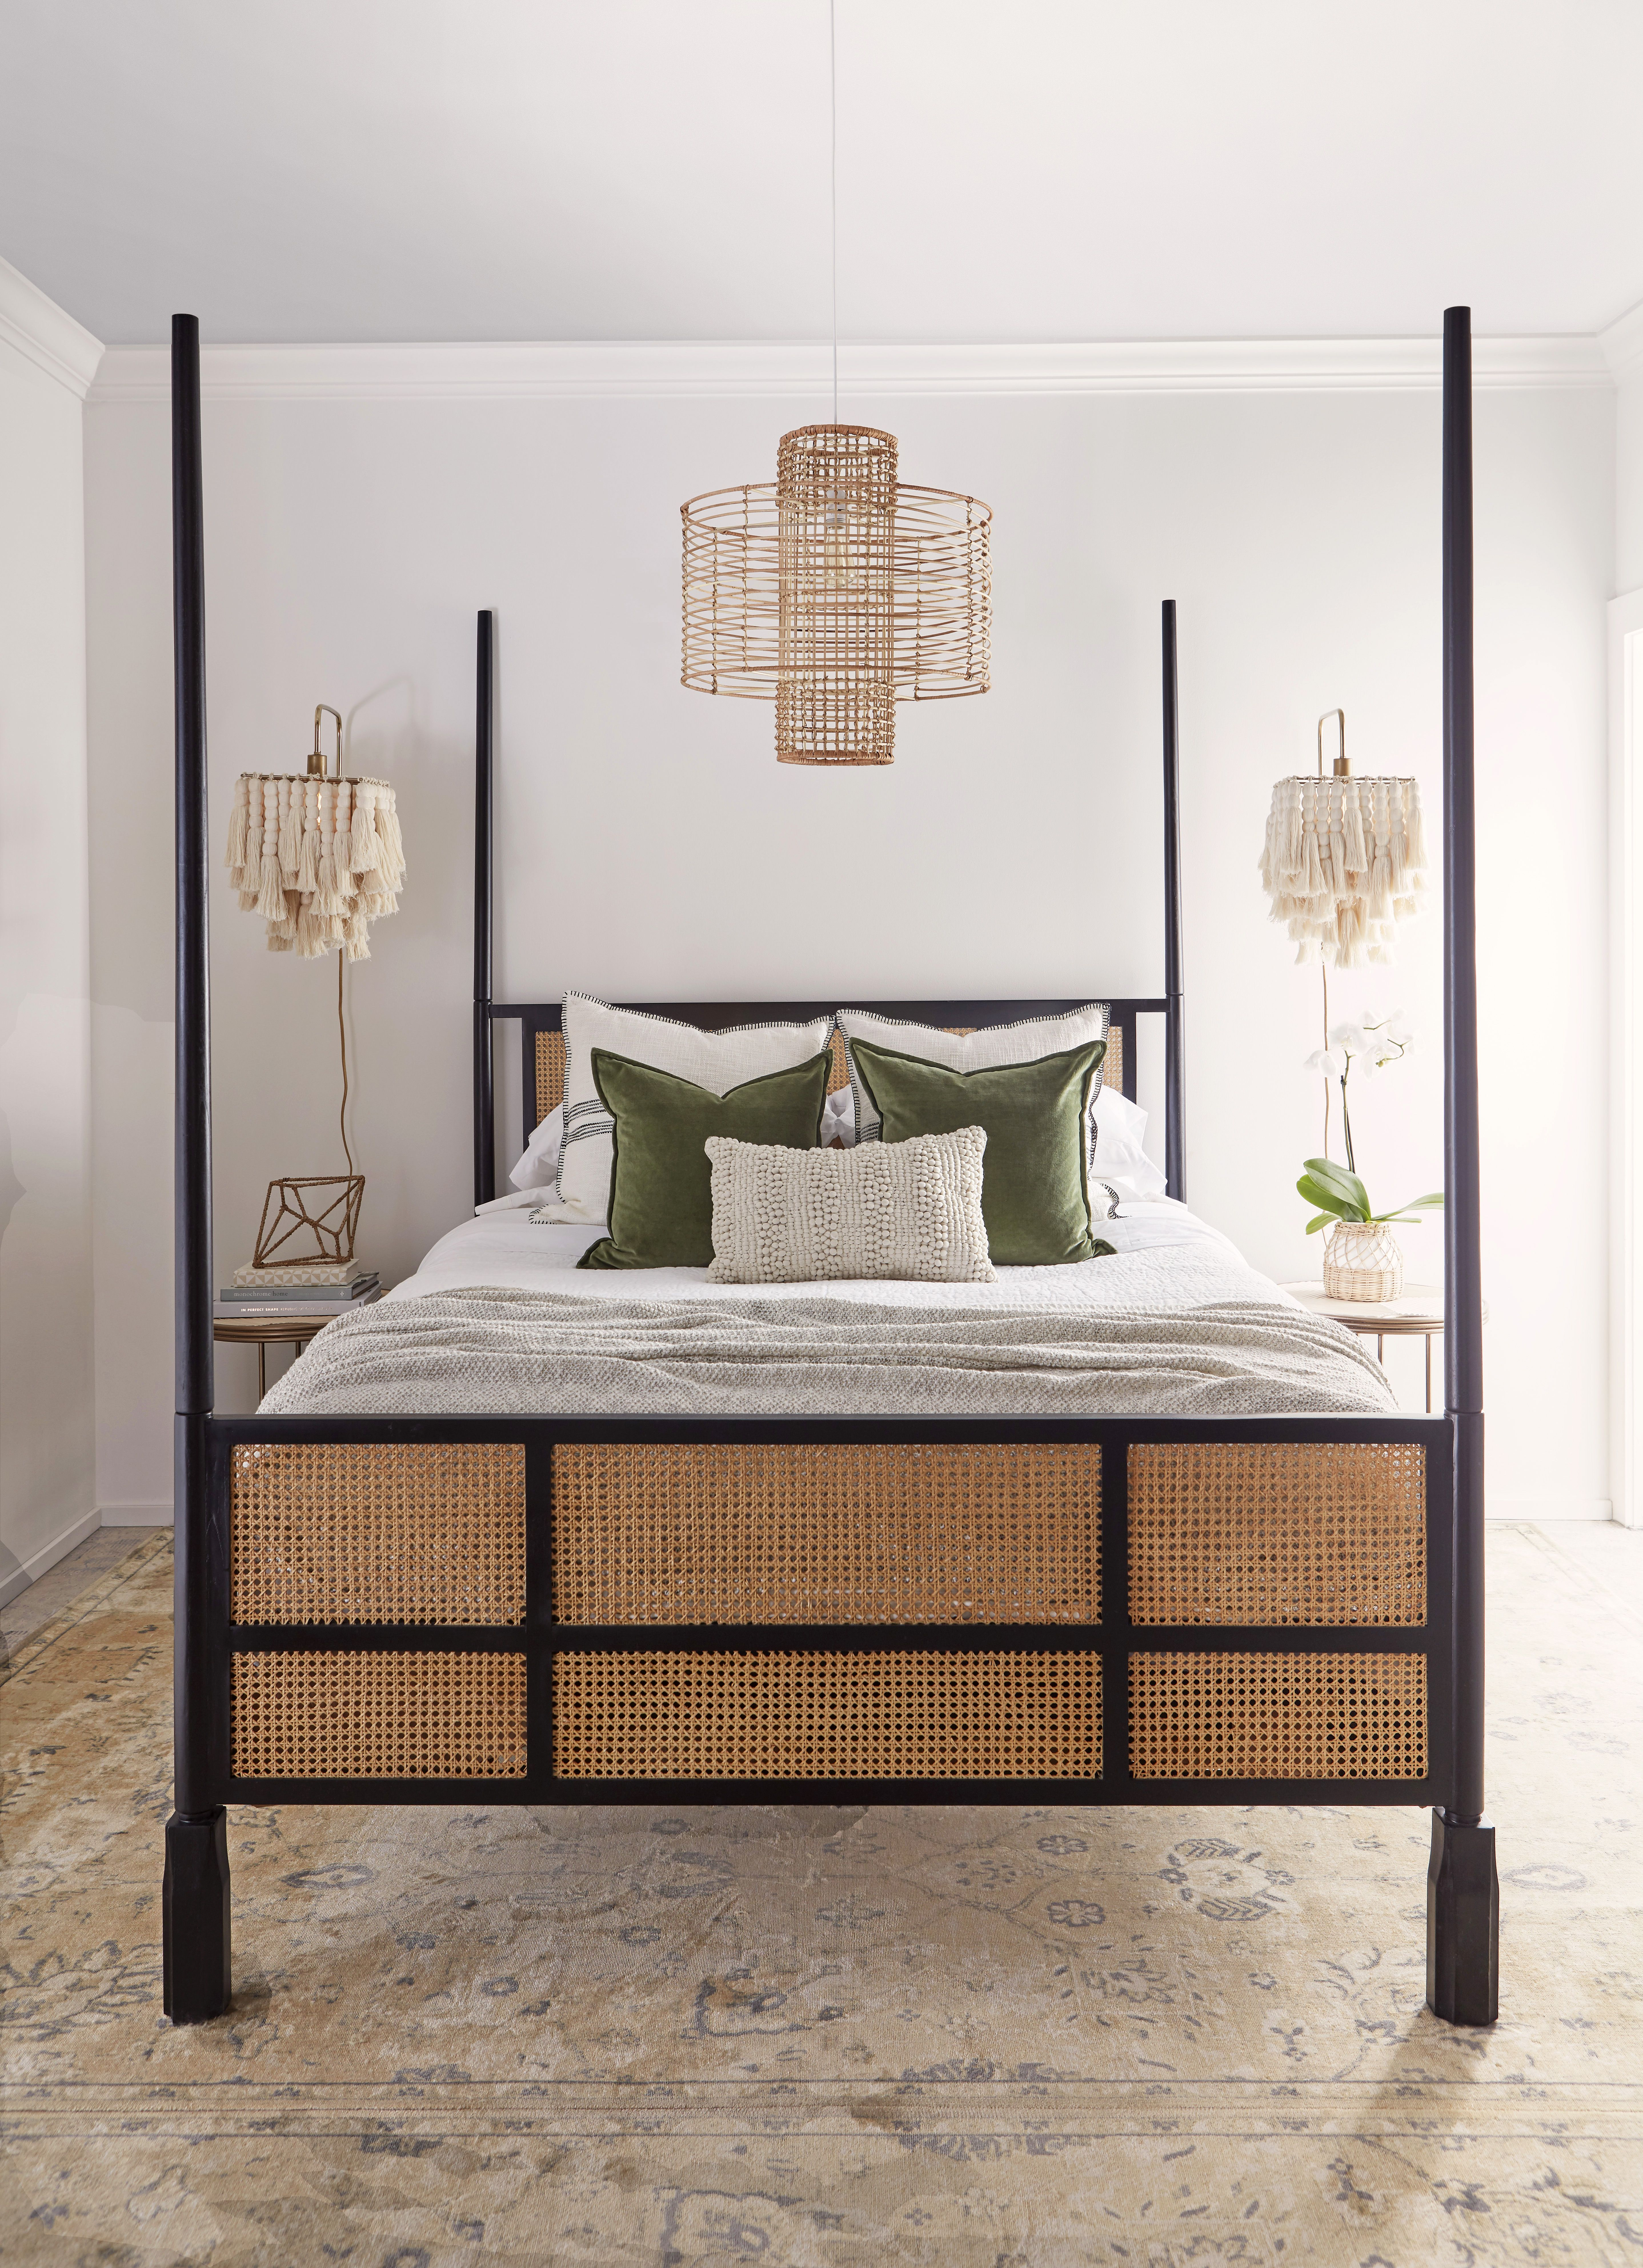 Stockholm Bed in Natural/Black in 2020 Trending decor